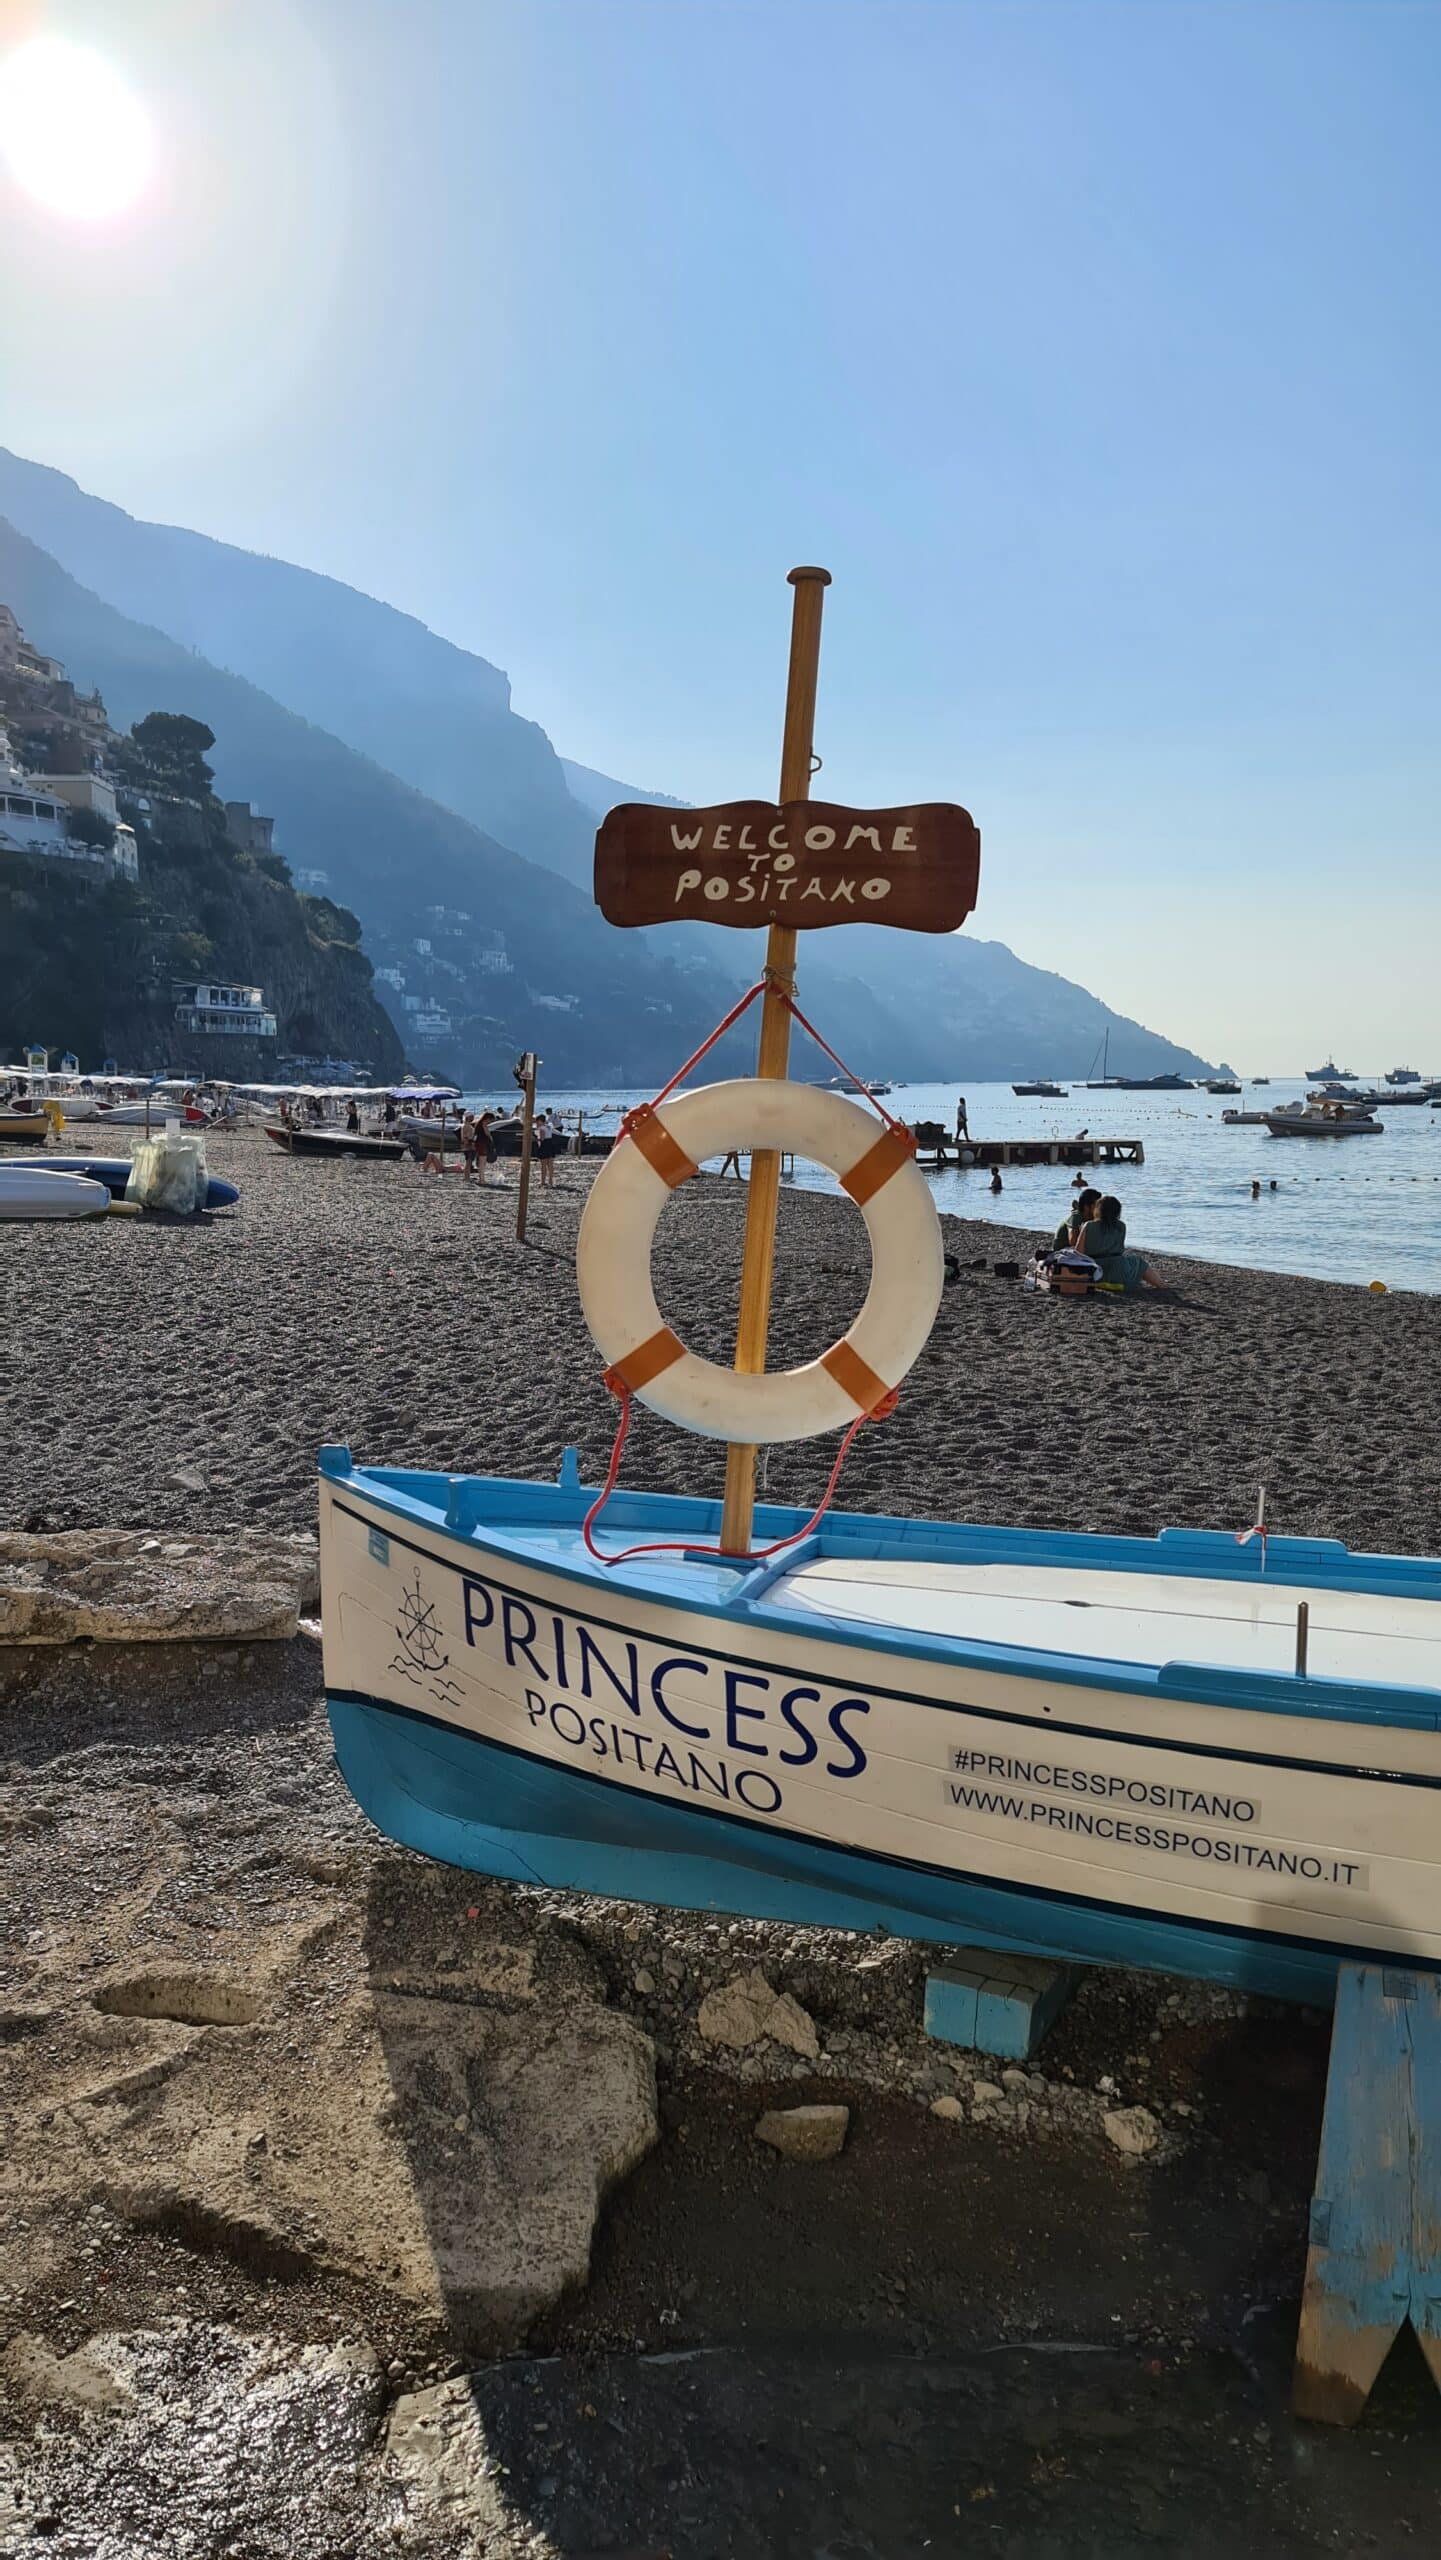 Positano Italy: 10 unforgettable Things to do in Positano & Positano beach 29